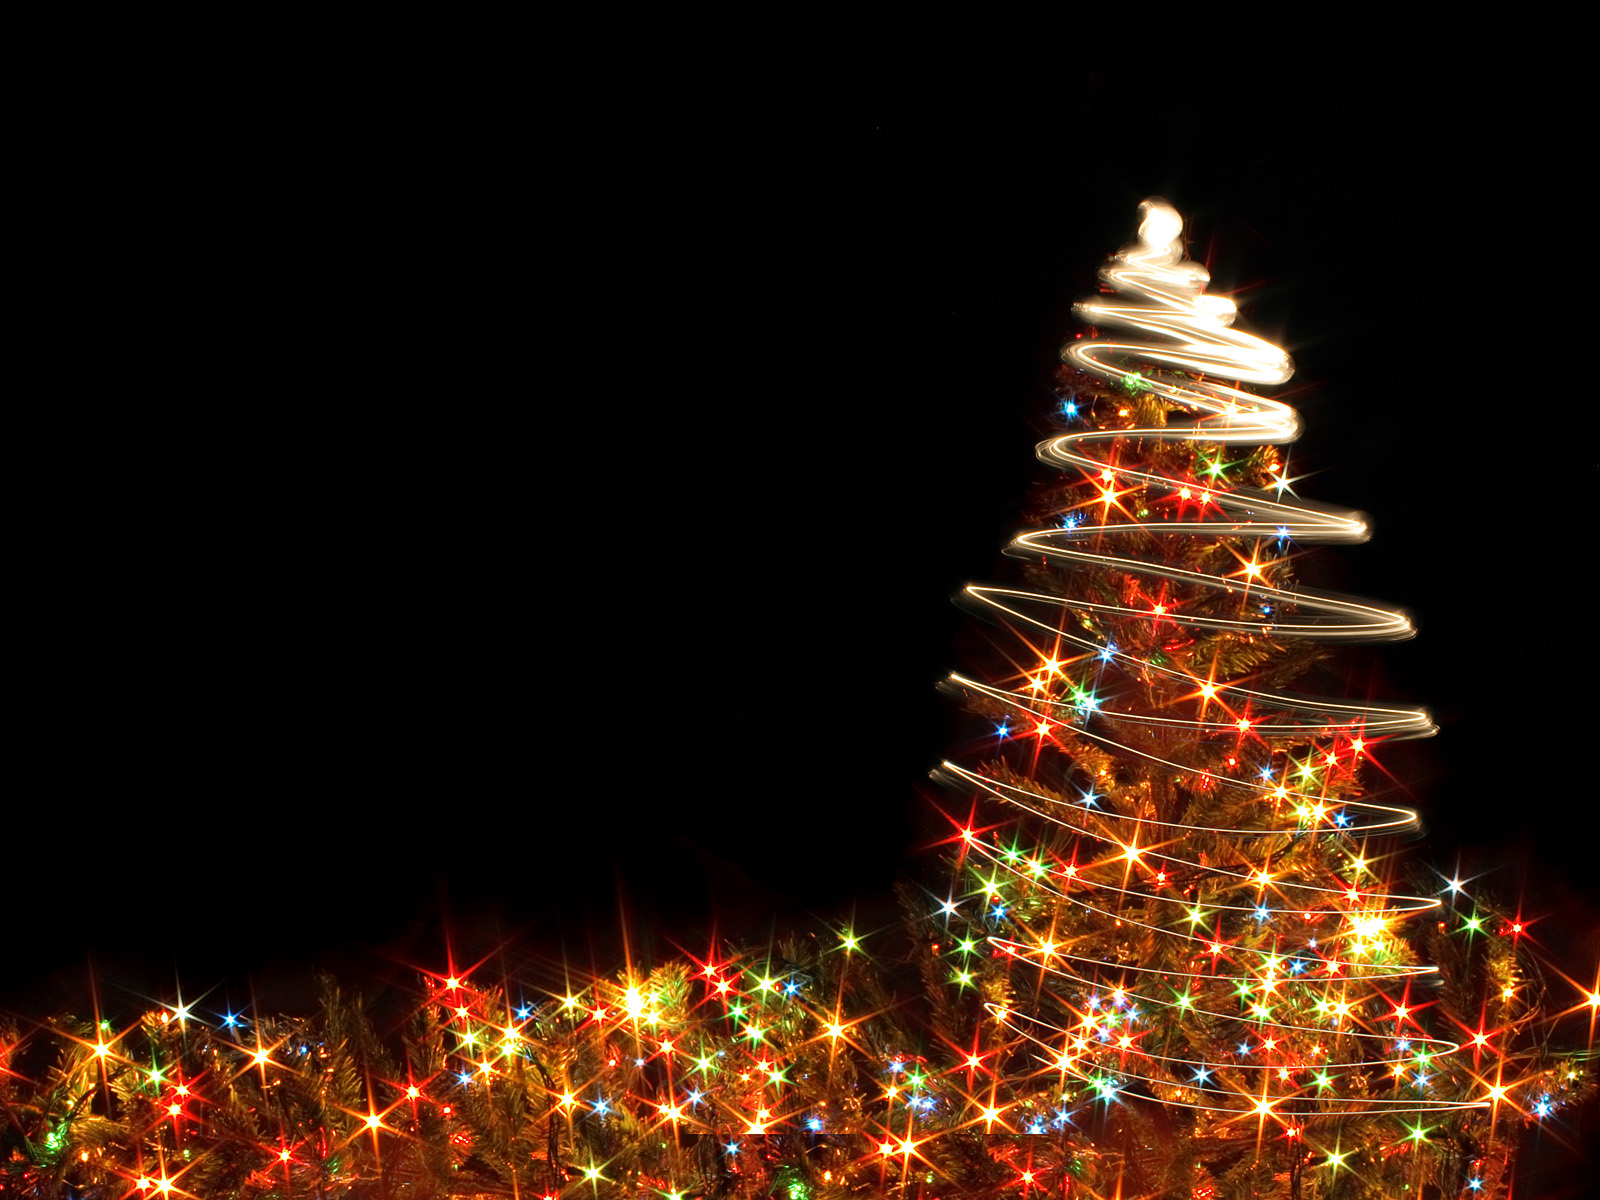 Christmas lights desktop Wallpapers HD photo images 15